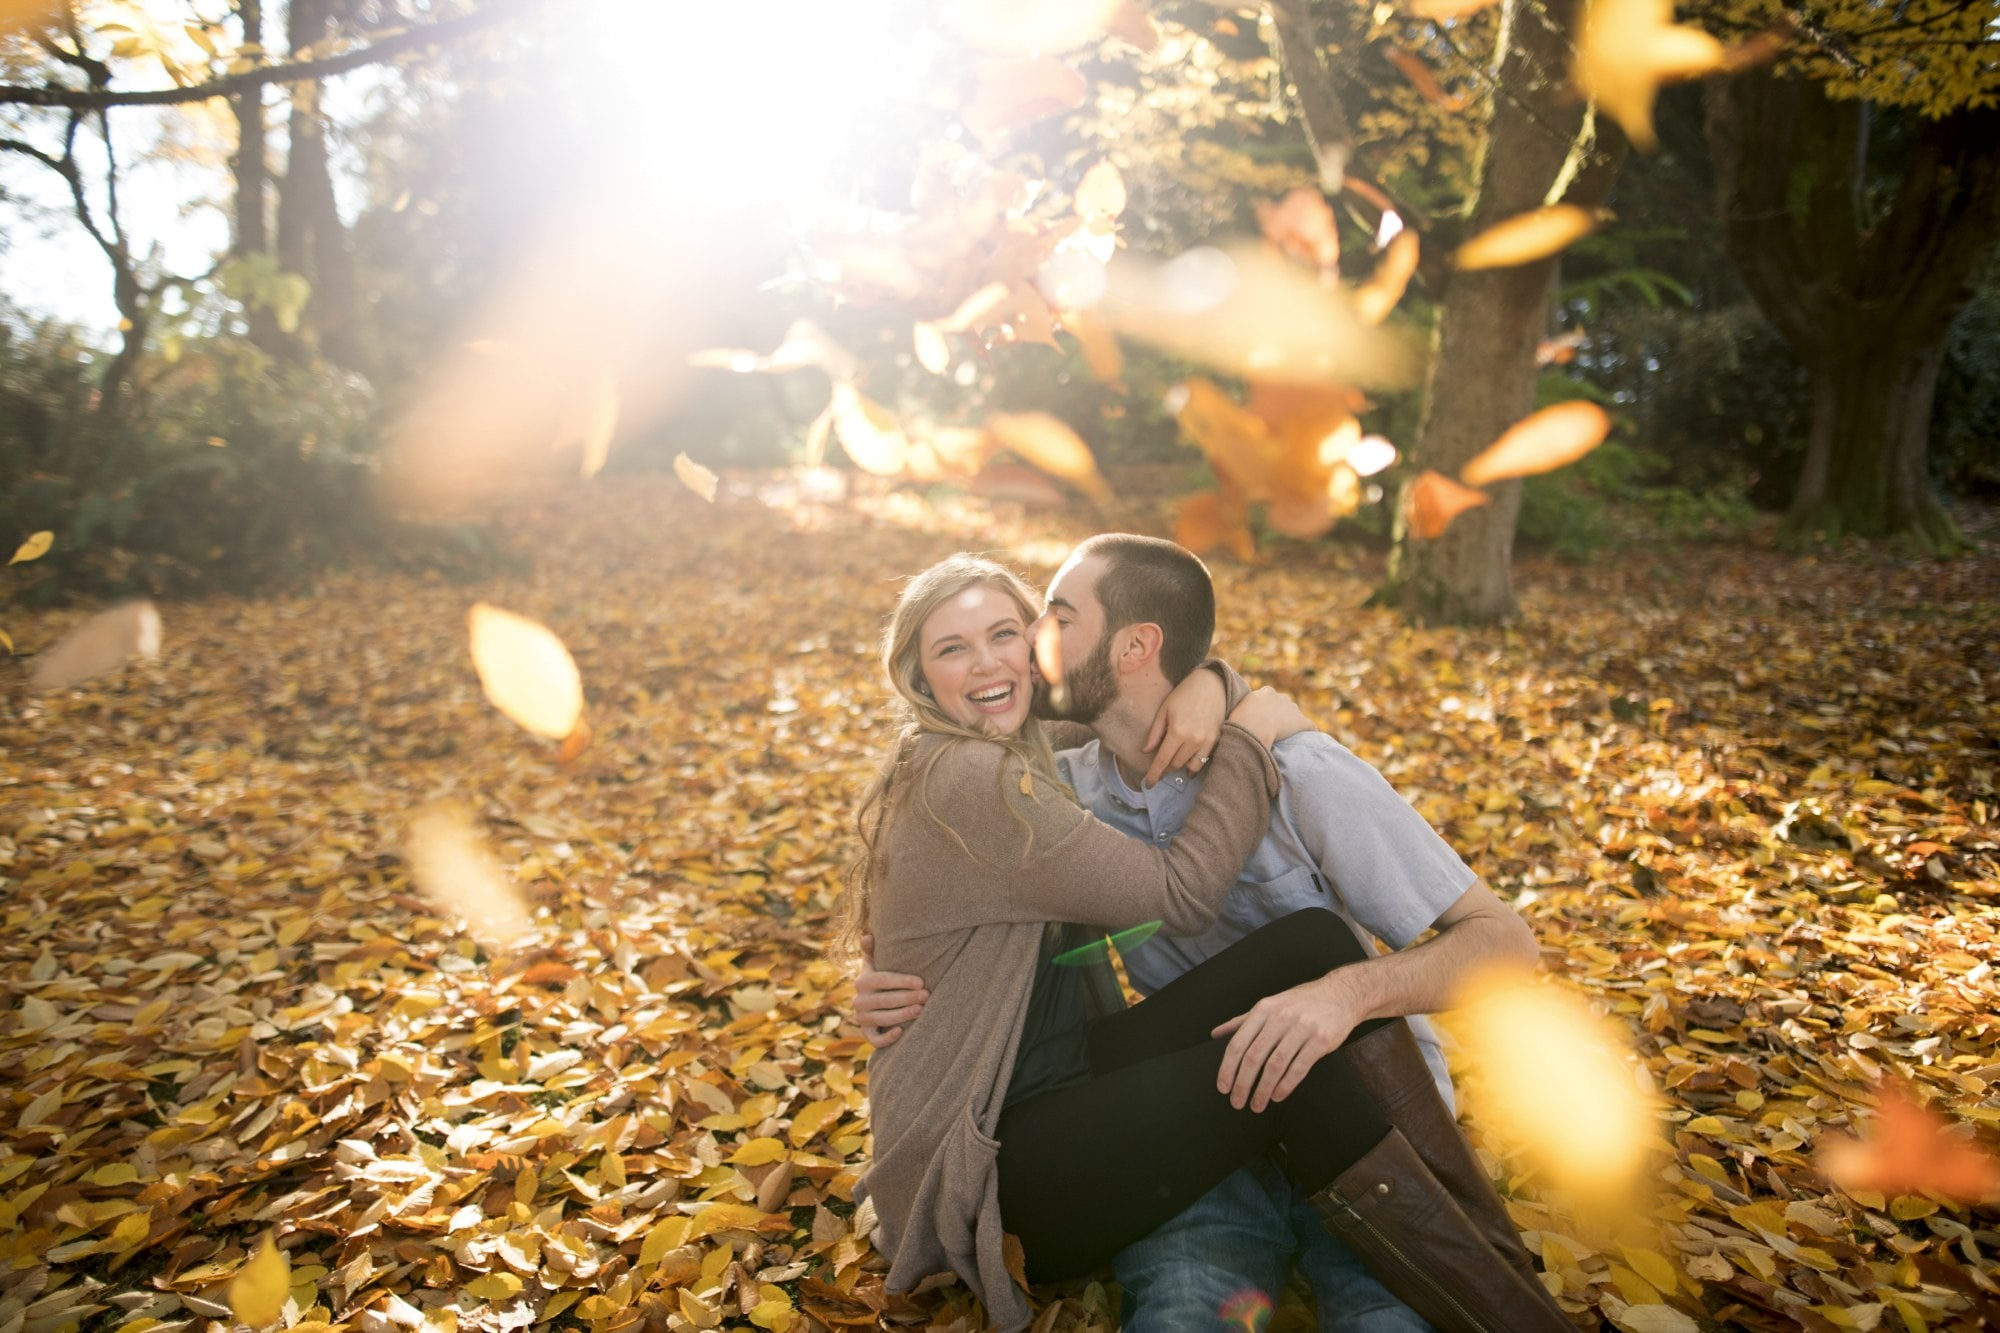 man and woman sitting on ground surrounded by brown leaves during daytime